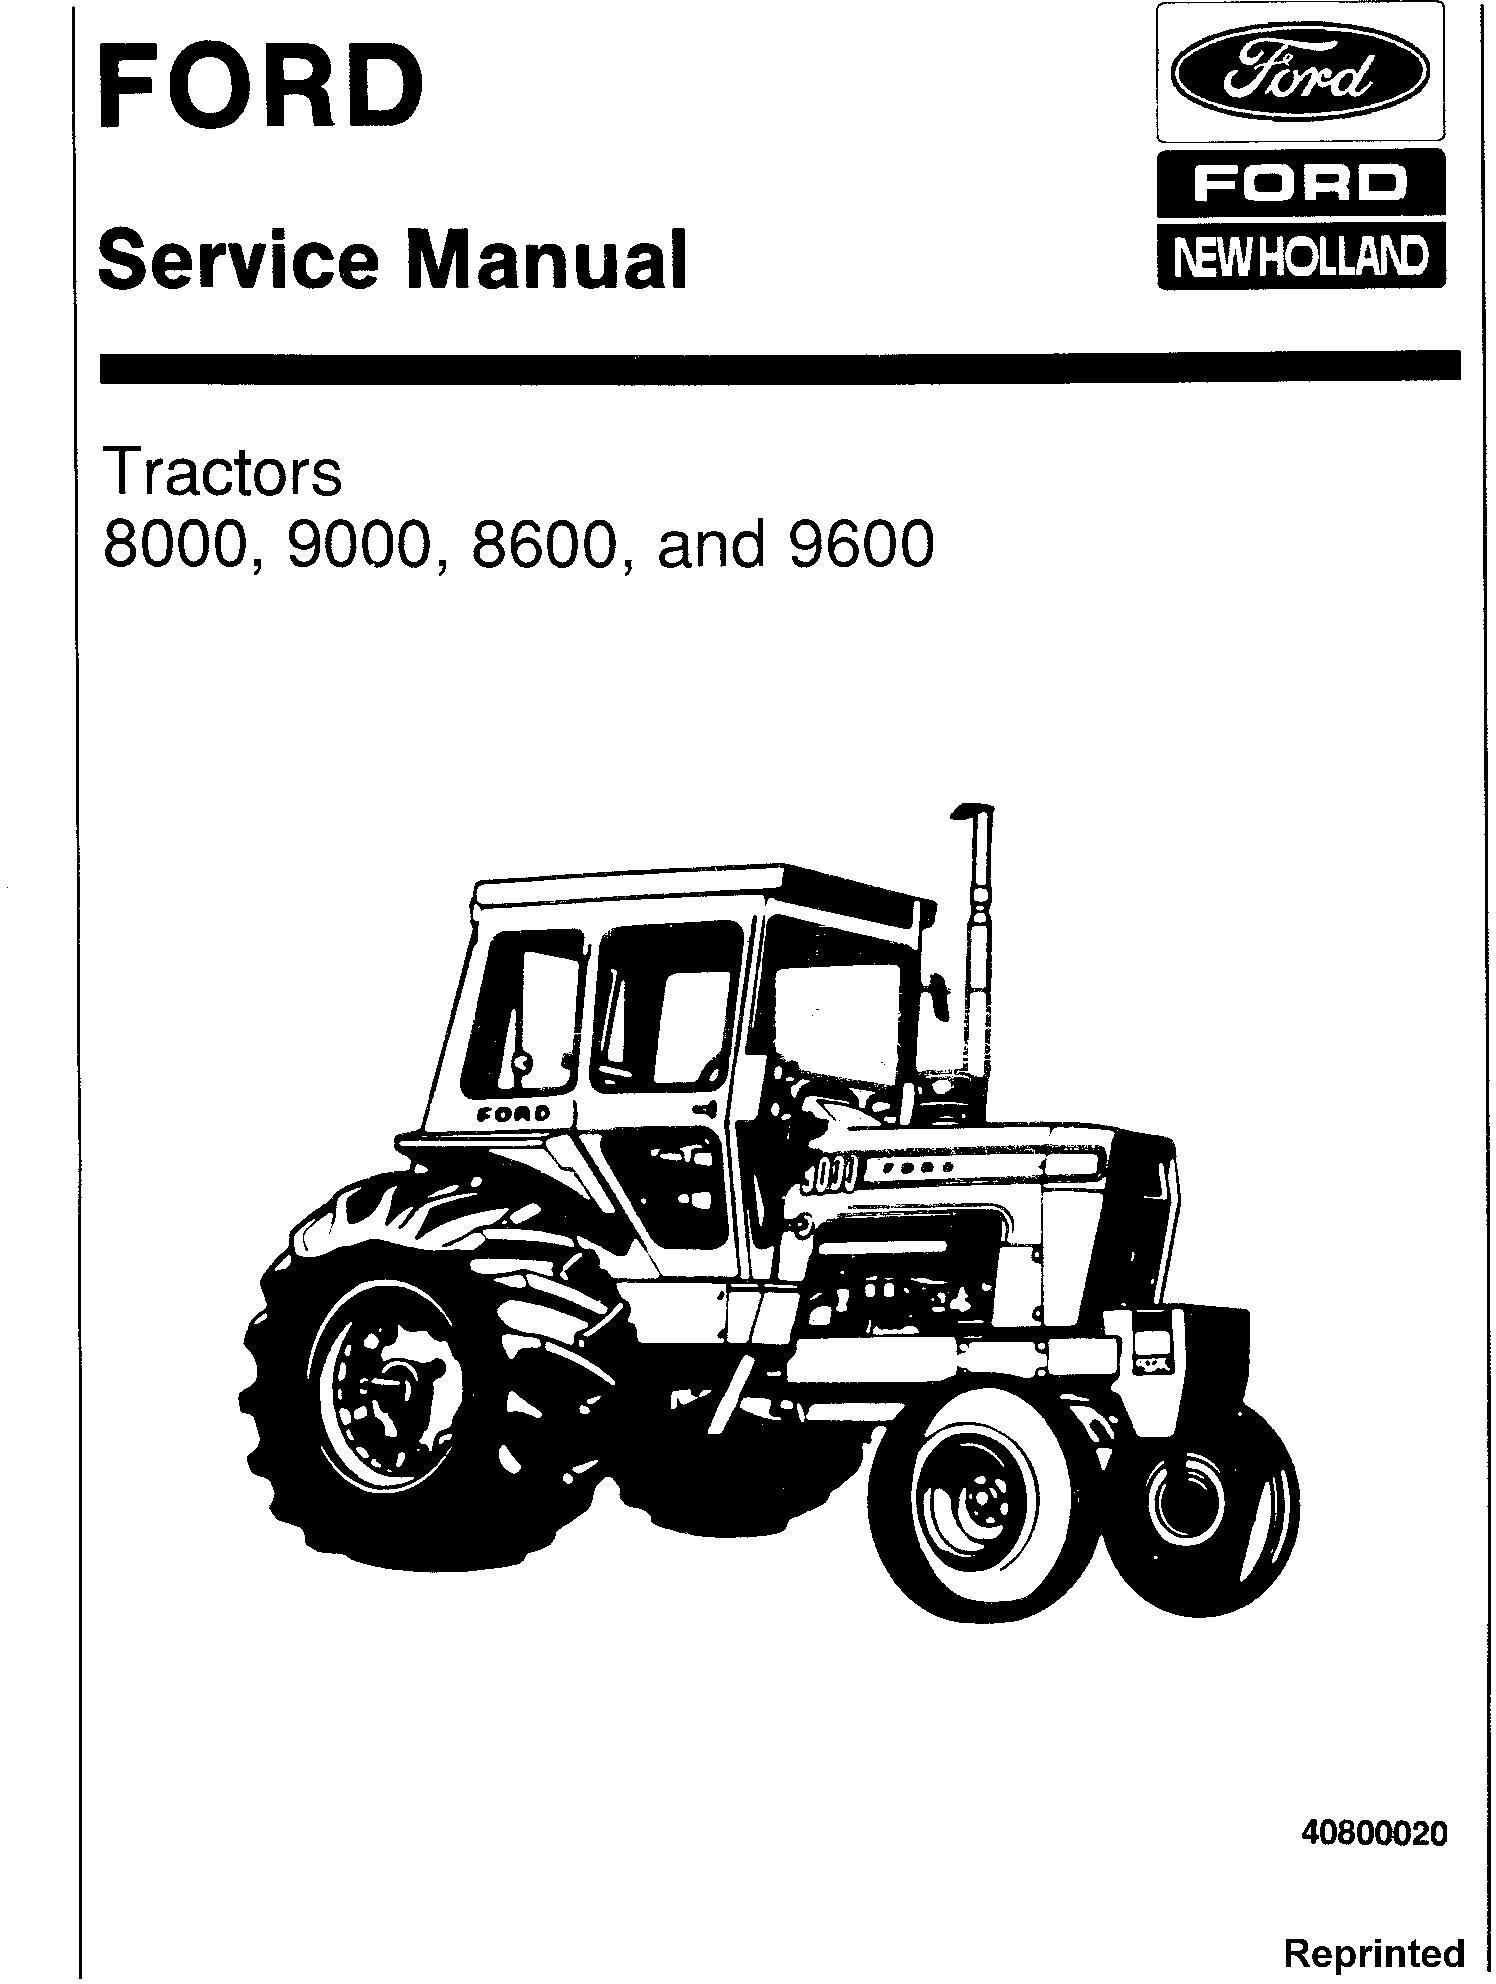 Ford 8000, 9000, 8600, 9600 Tractor Service Repair Manual (SE3095)